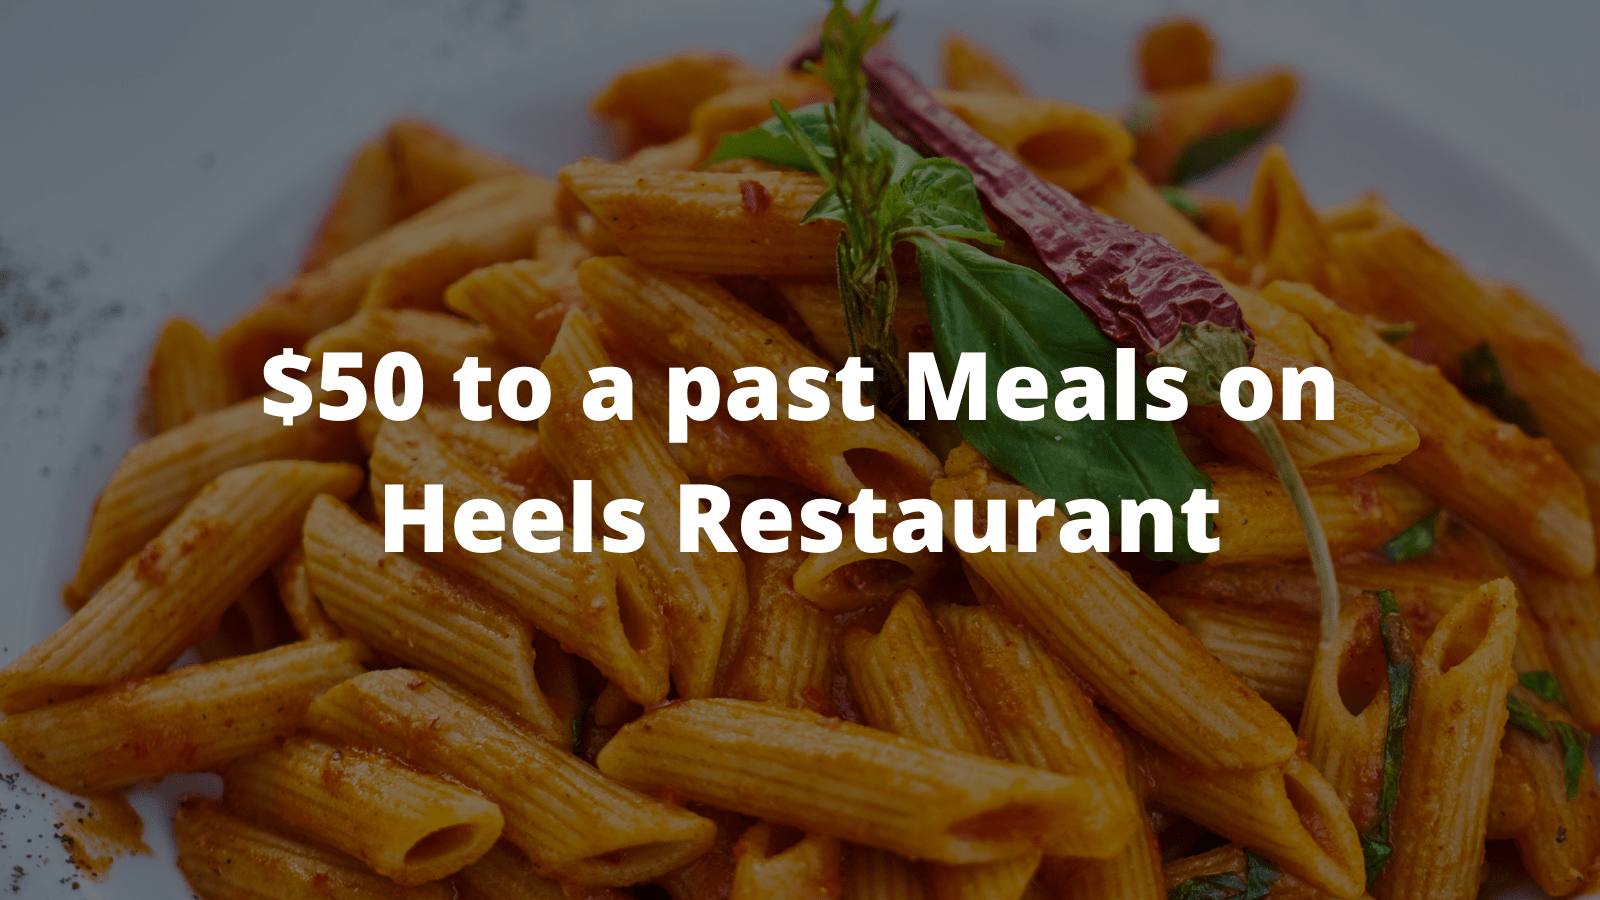 $50 to a past Meals on Heels Restaurant